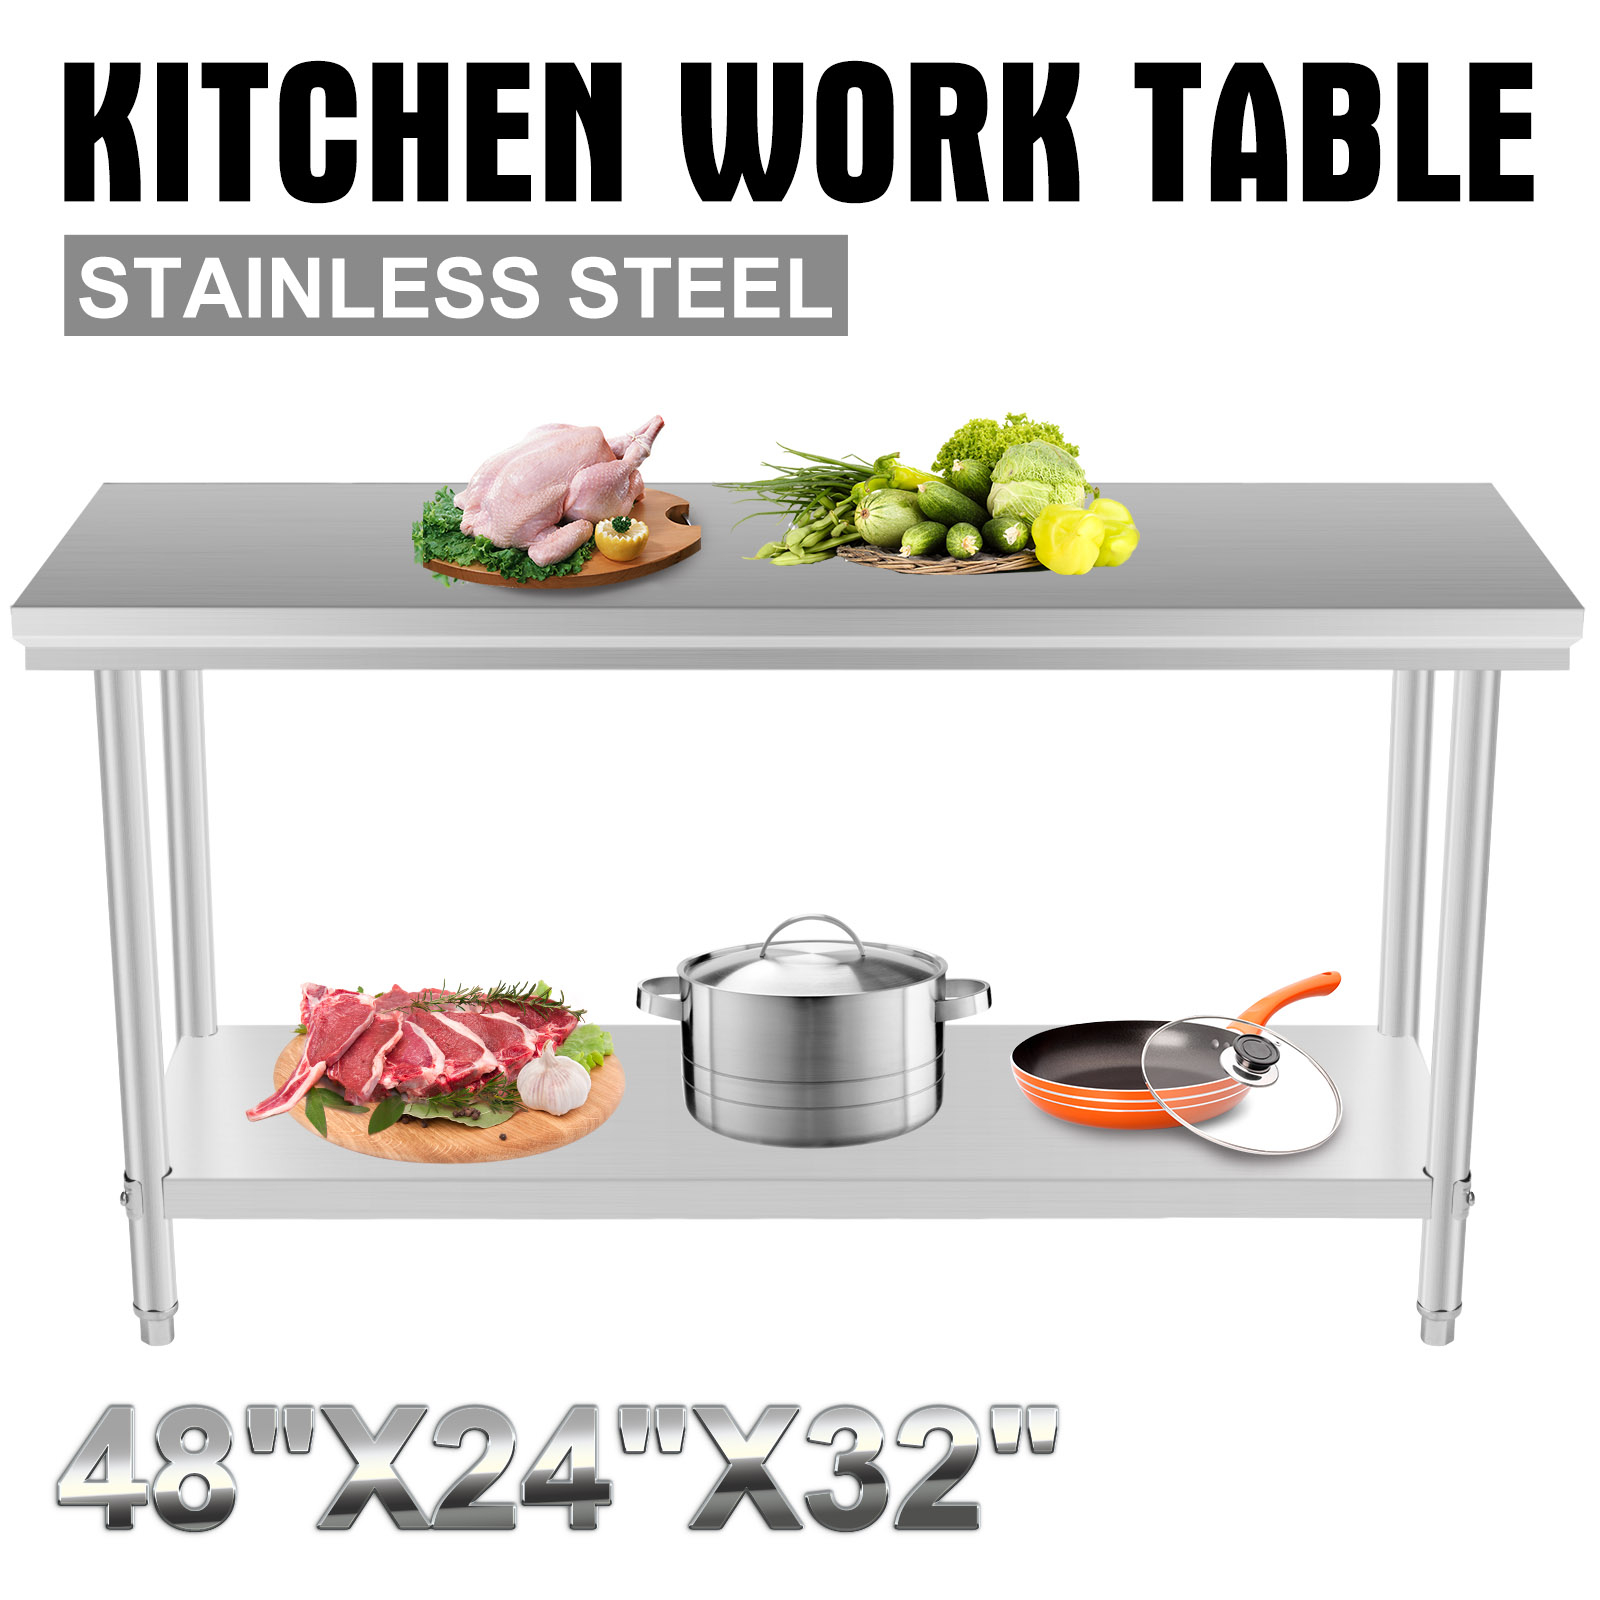 kitchen food preparation table bridge faucet stainless steel commercial work prep